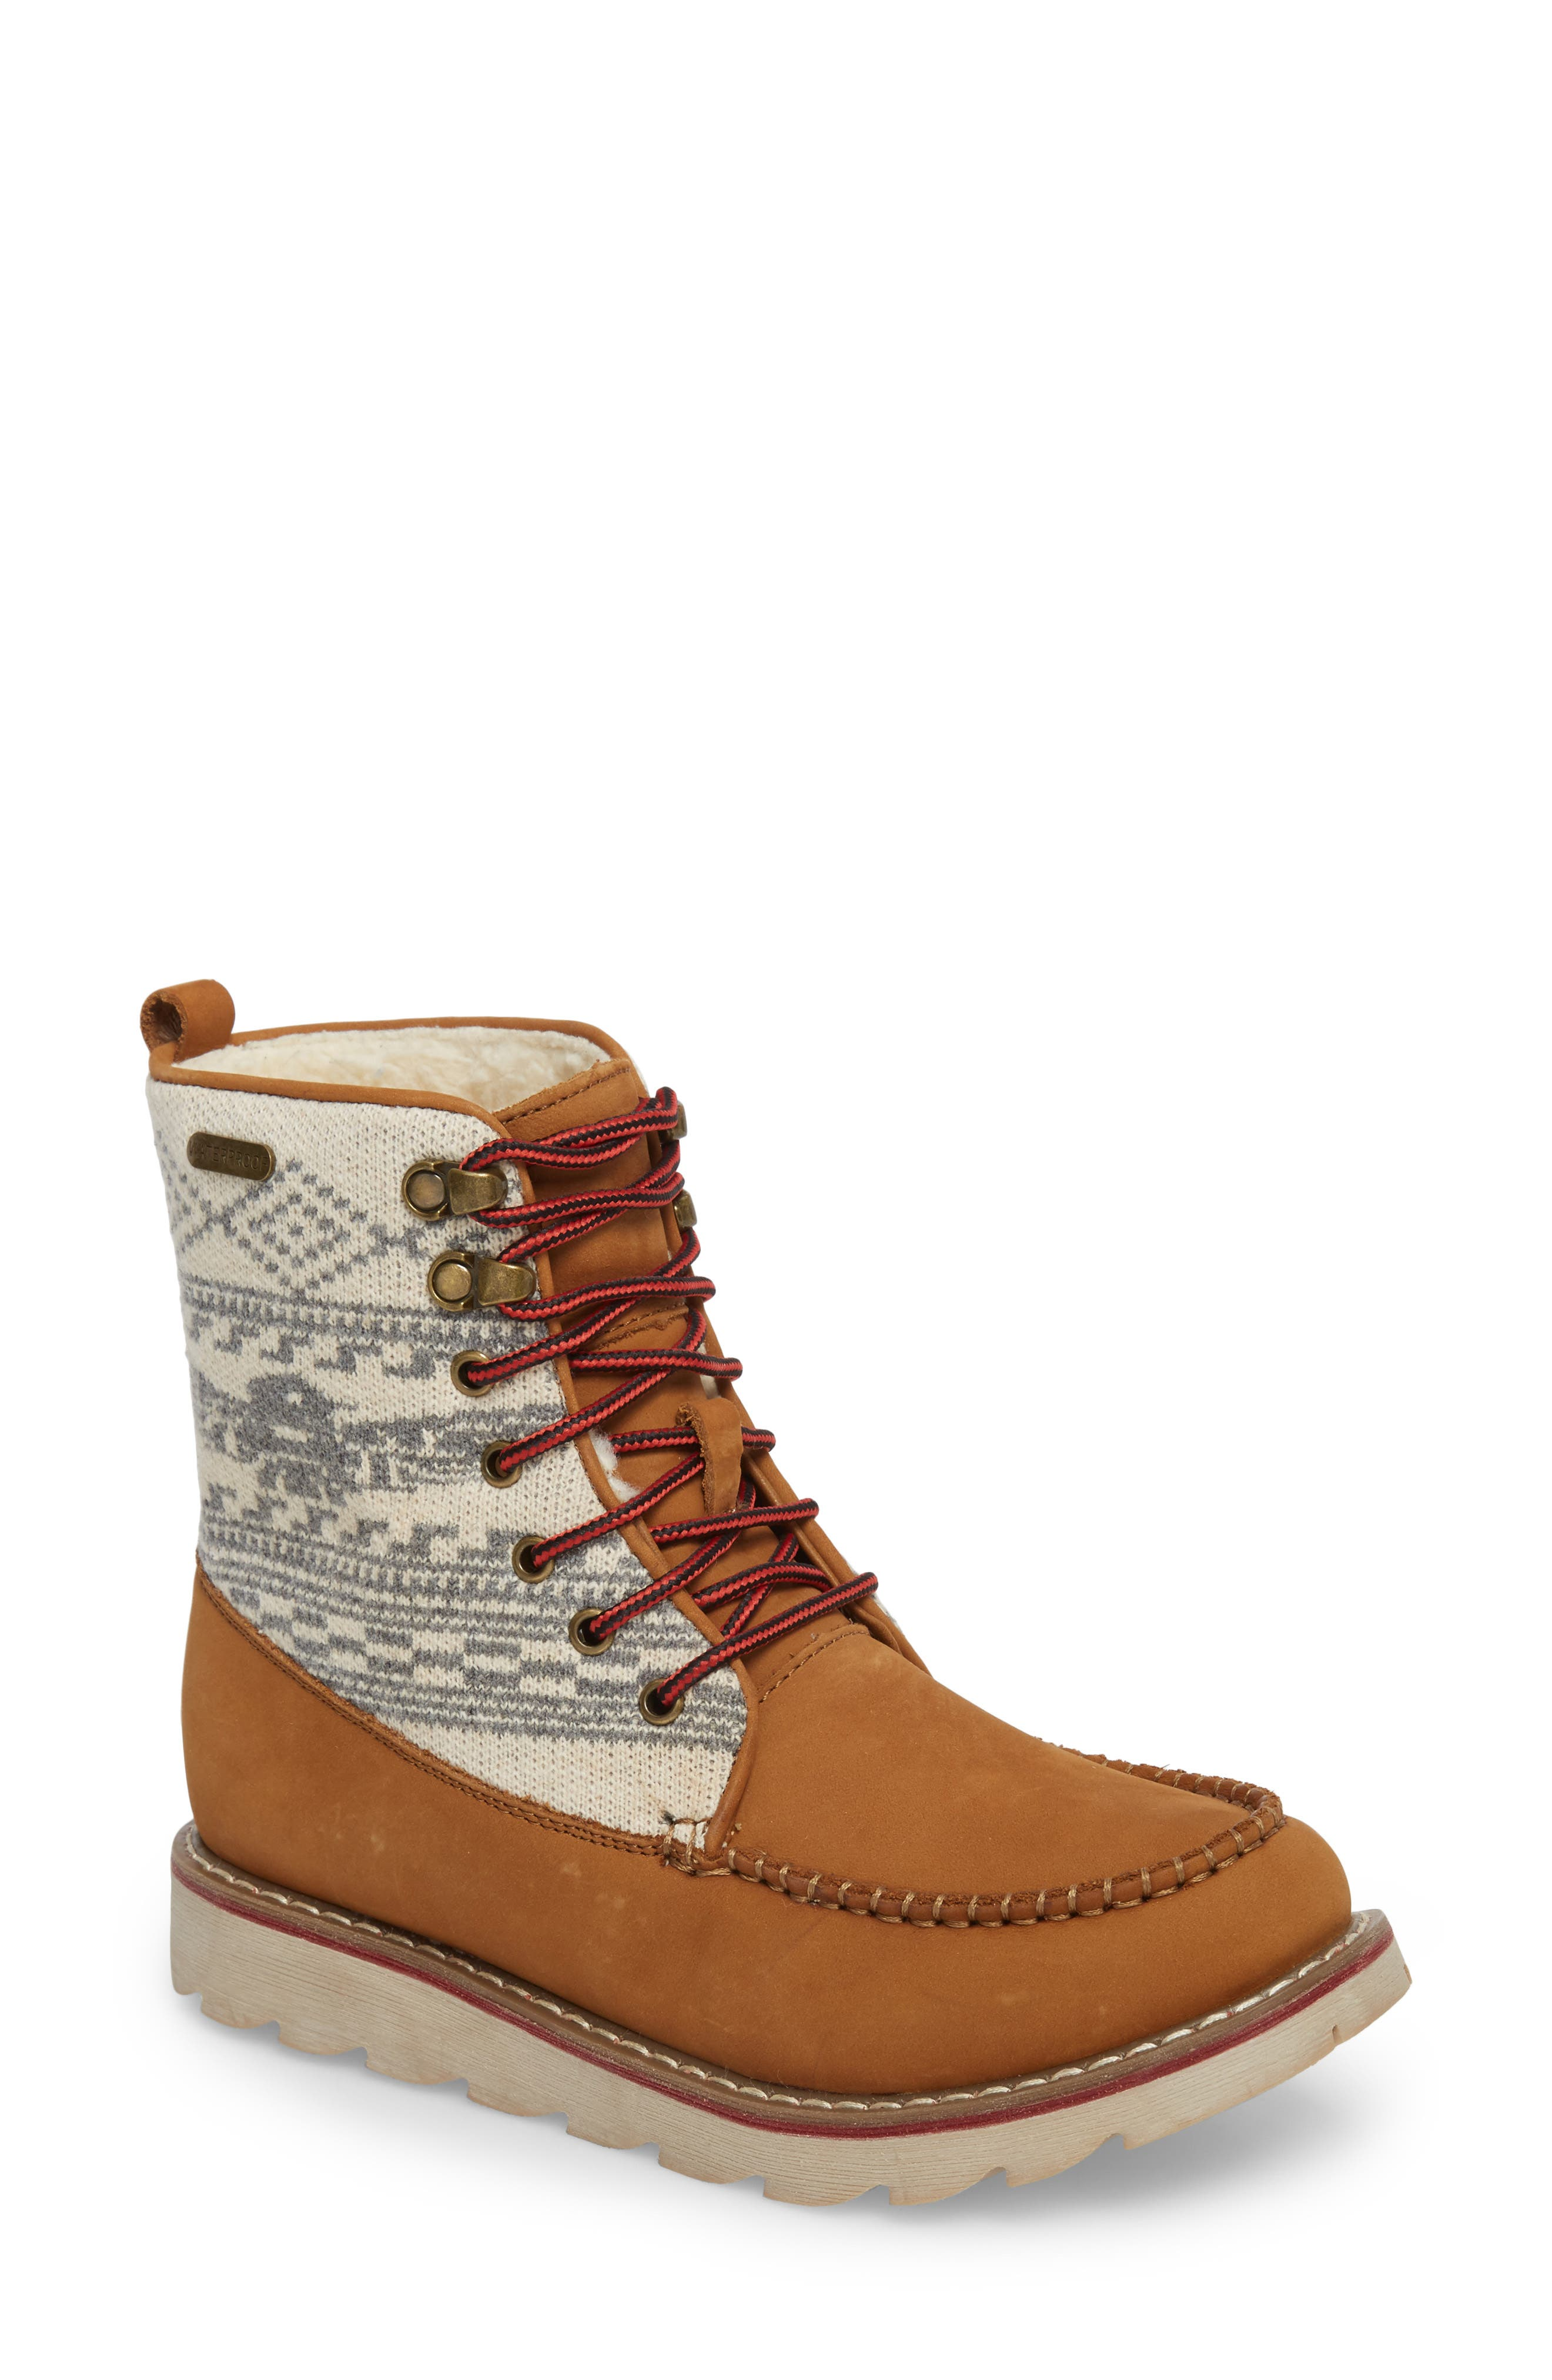 Patterned Waterproof Snow Boot,                             Main thumbnail 1, color,                             260